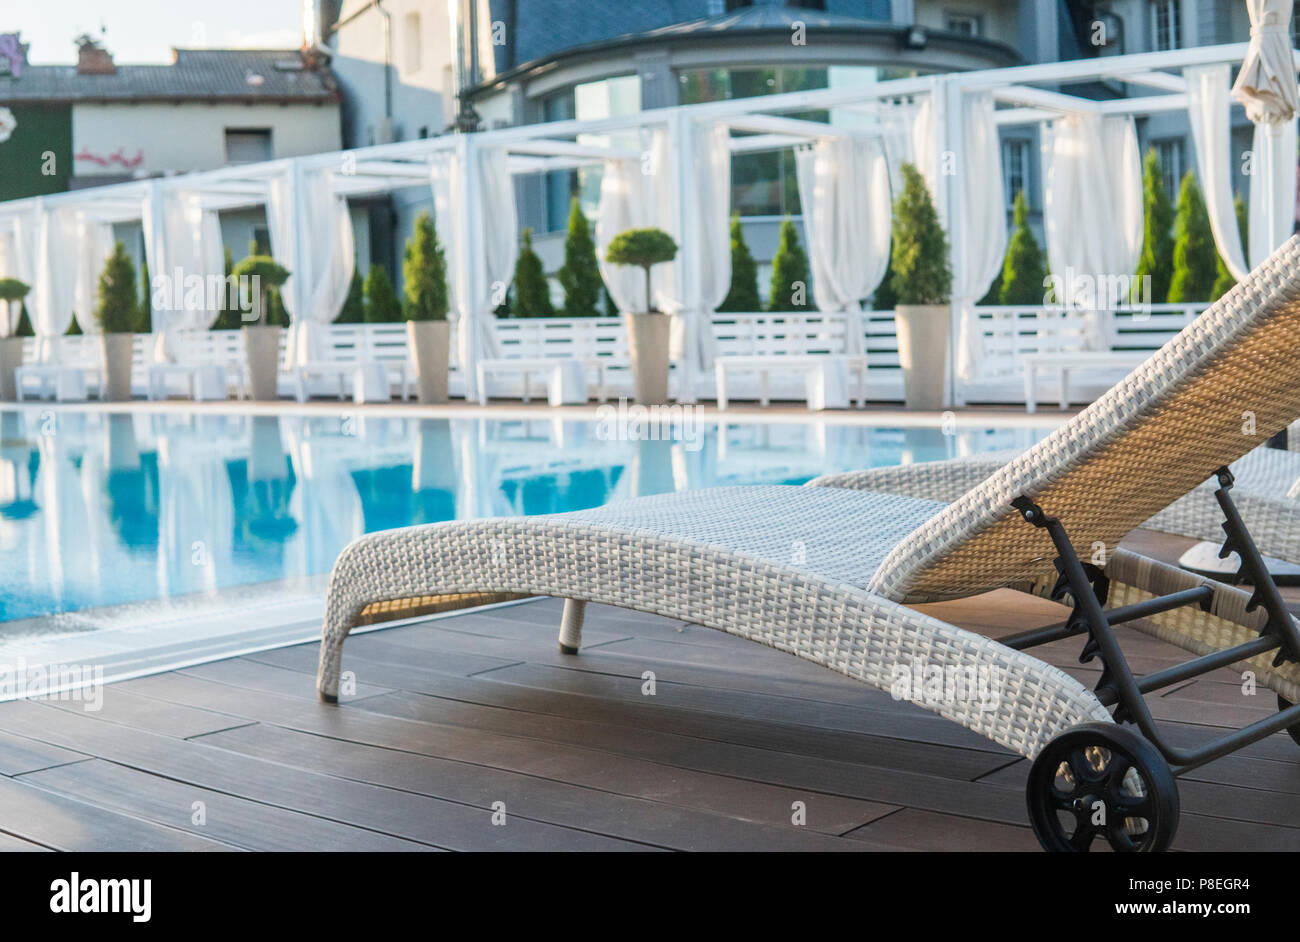 Sunbed near pool with clean water in sunny day. - Stock Image